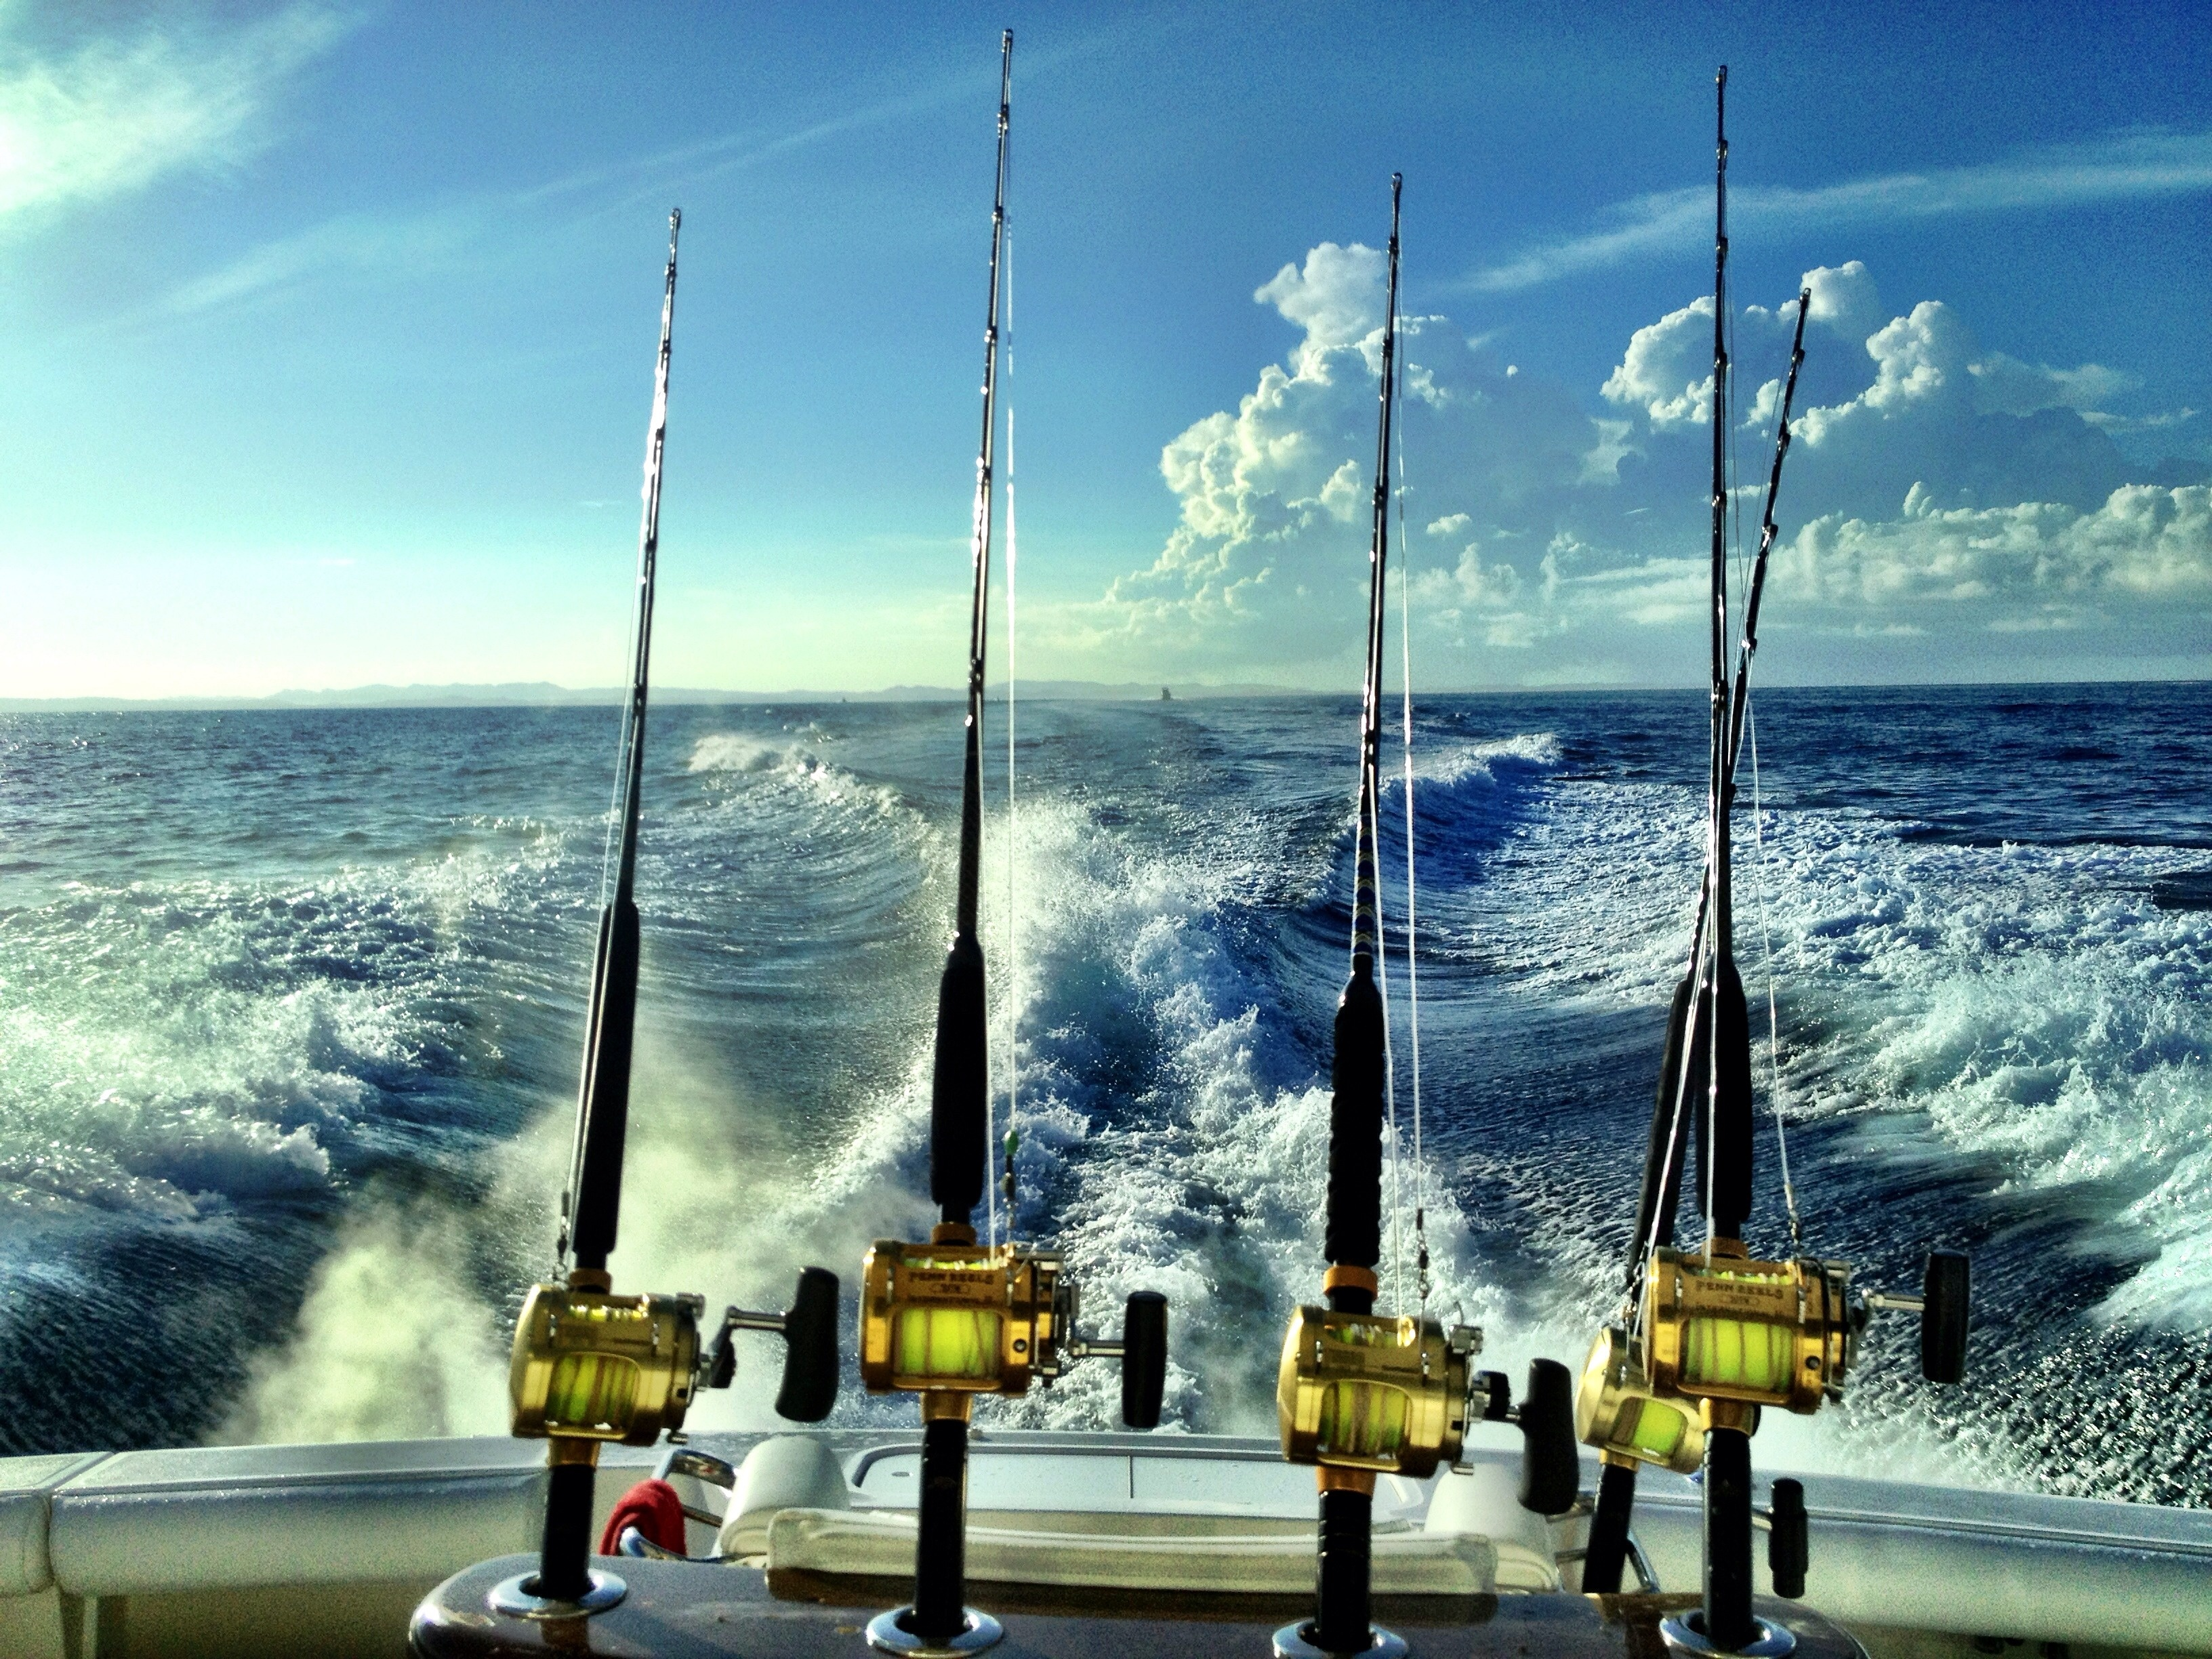 Offshore fishing fishing charters guide info for Offshore fishing boats